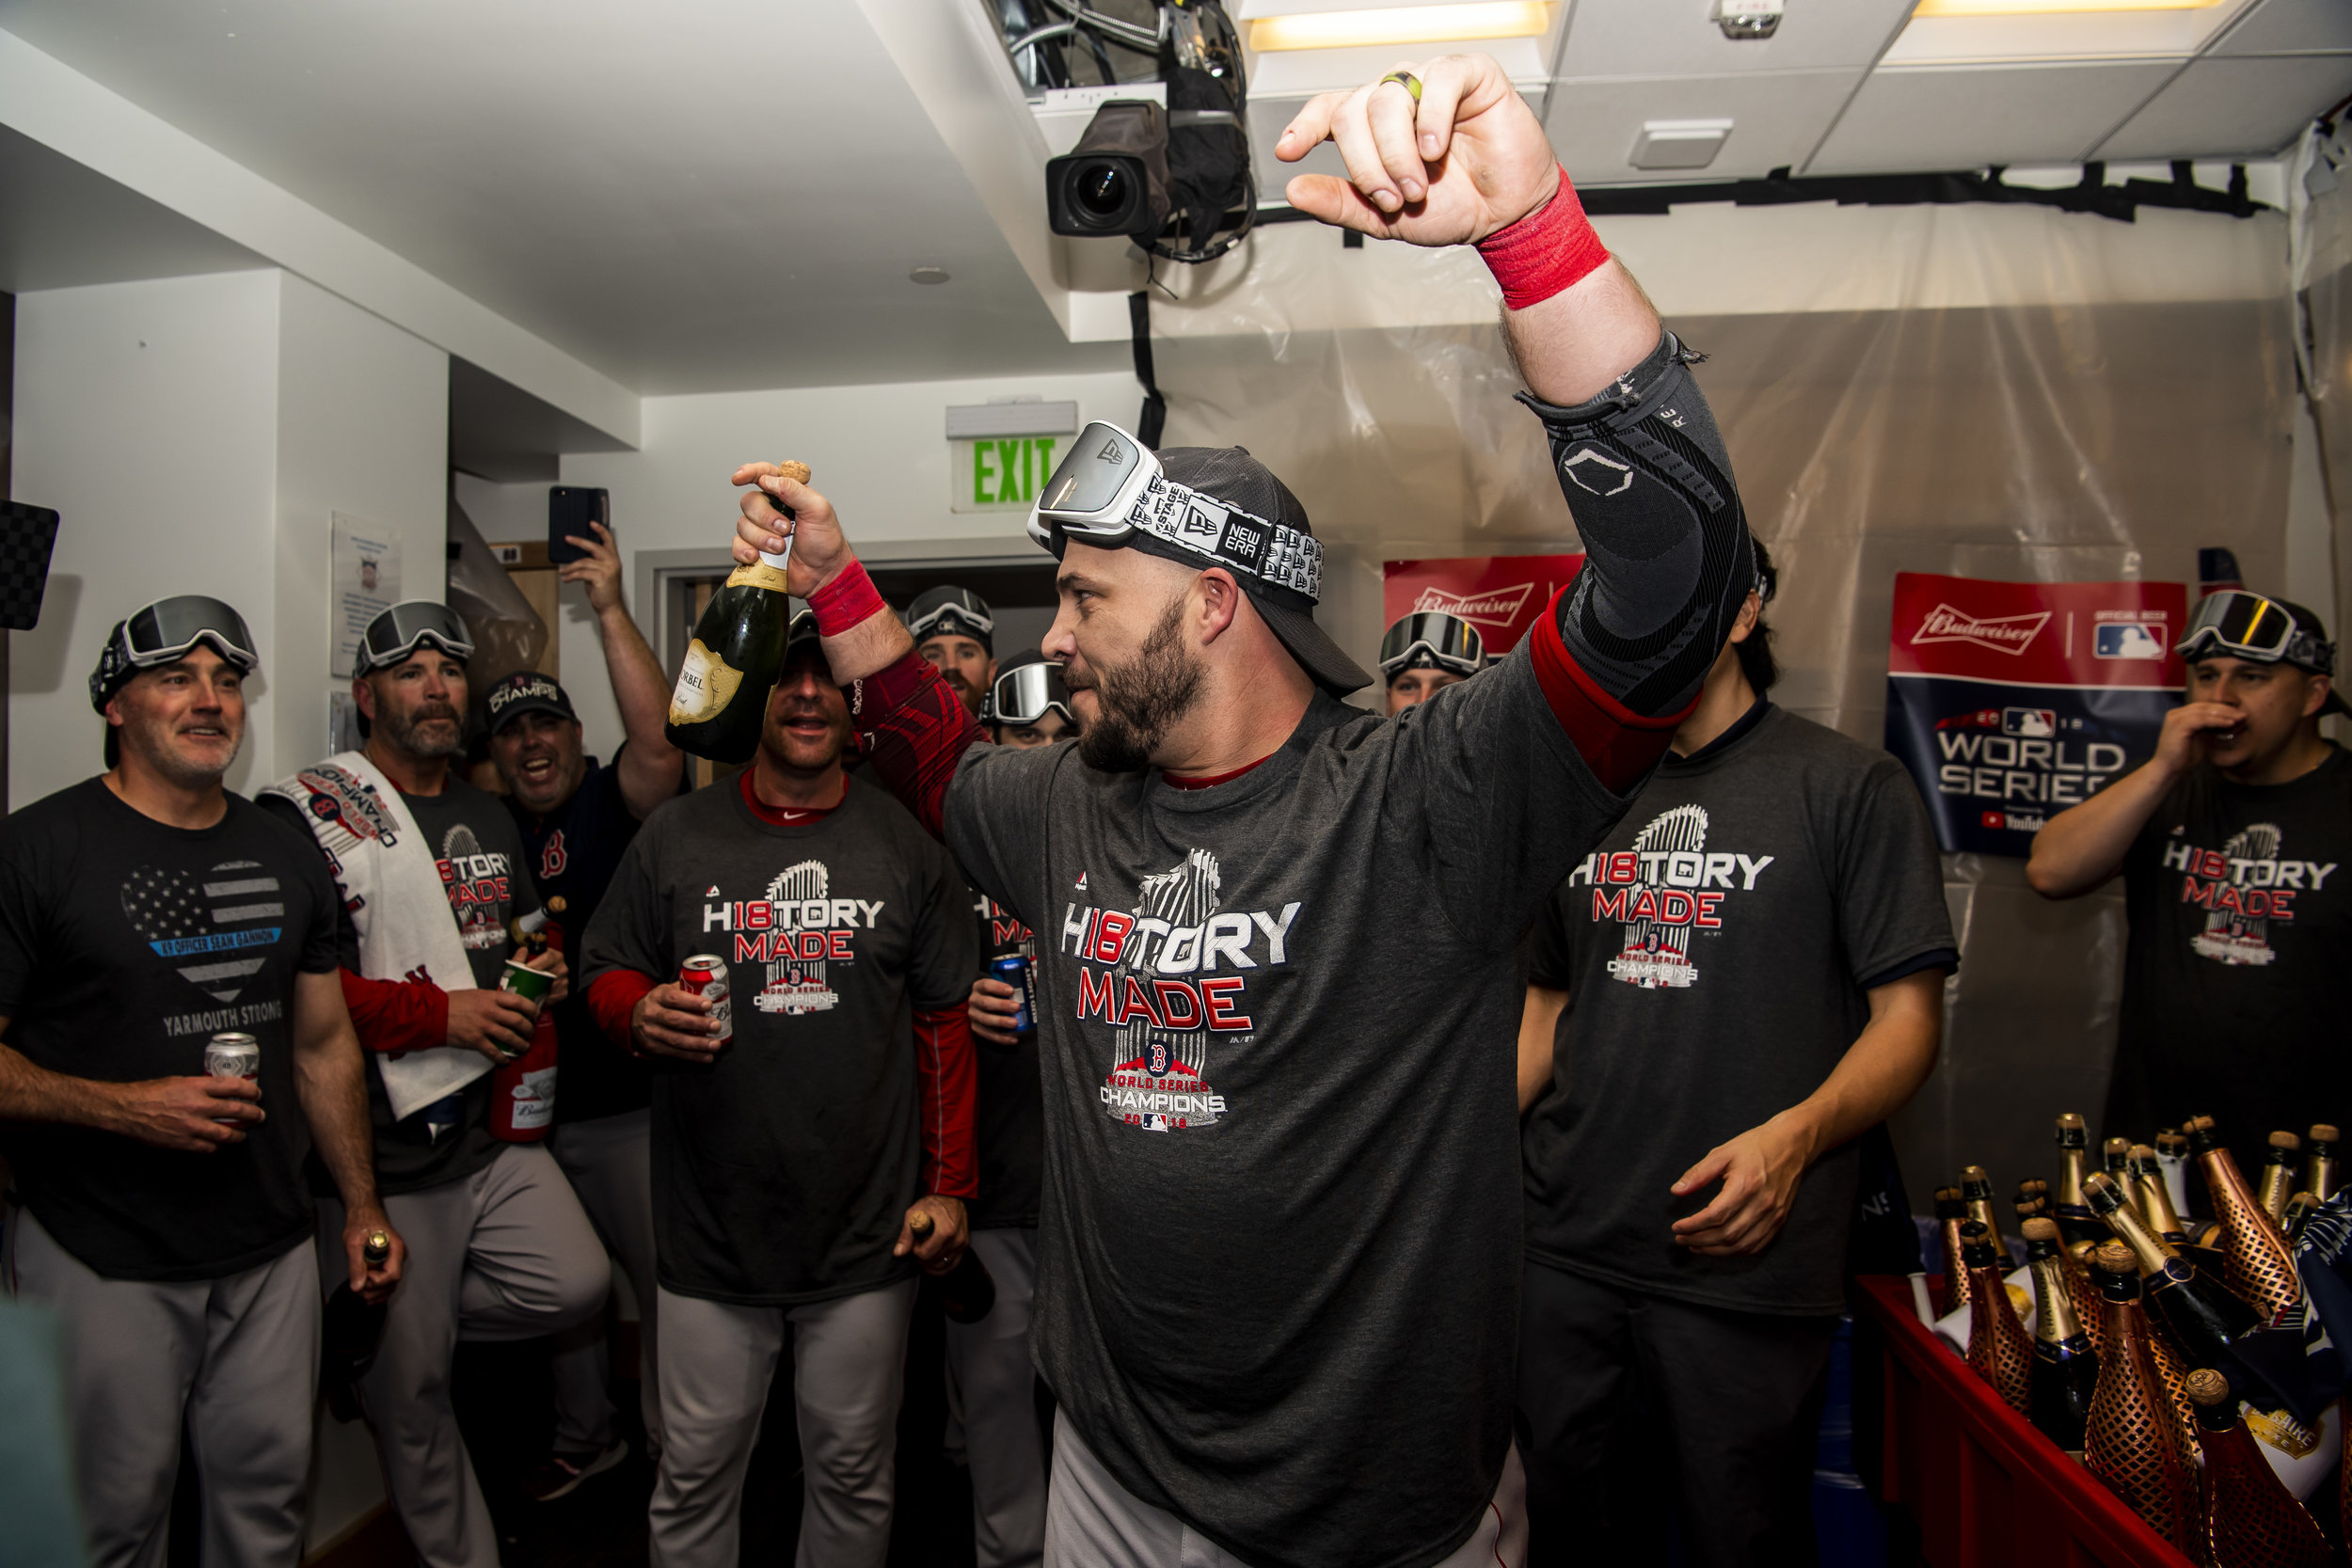 October 28, 2018, Los Angeles, Ca: World Series MVP Steve Pearce after the Boston Red Sox defeated the Los Angeles Dodgers in Game 5 to win the World Series at Dodger Stadium in Los Angeles, California on Saturday, October 28, 2018. (Photo by Matthew Thomas/Boston Red Sox)